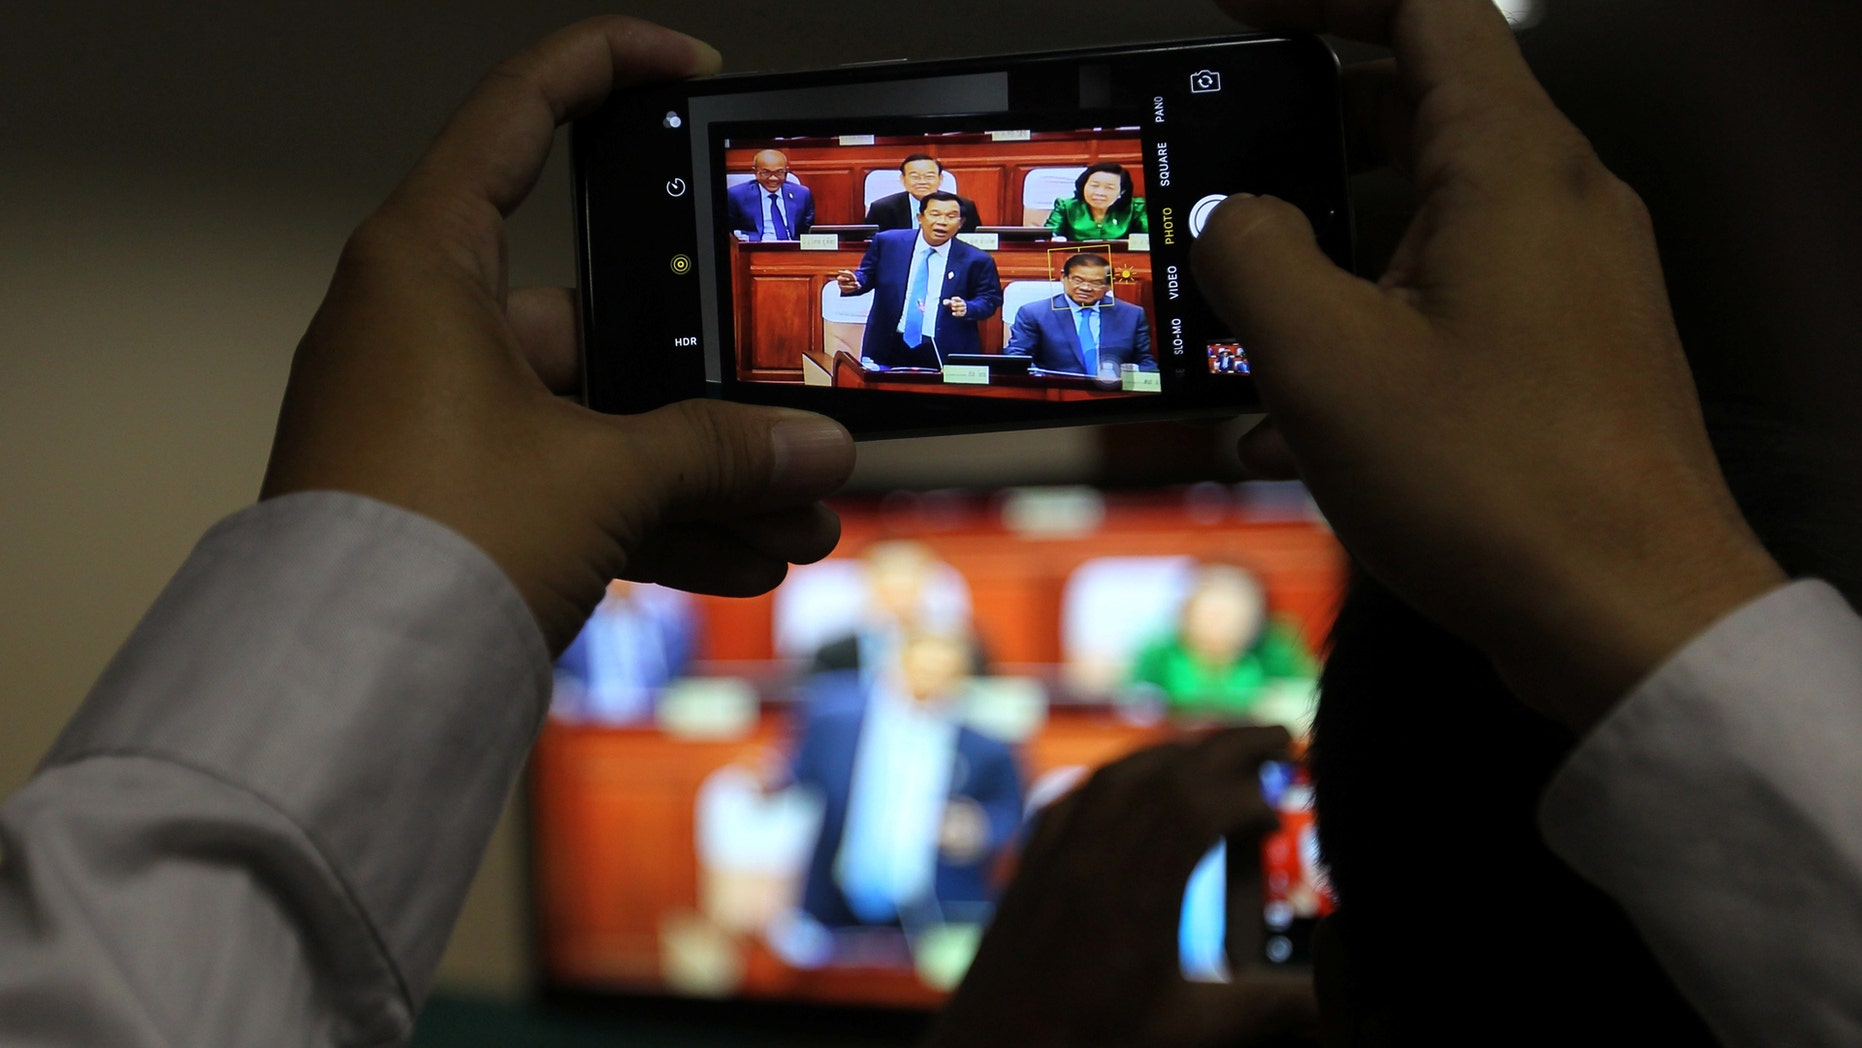 File photo: A man uses a smartphone to take a picture of Cambodia's Prime Minister Hun Sen from a television screen during a plenary session at the National Assembly of Cambodia, in central Phnom Penh, January 31, 2017. (REUTERS/Samrang Pring)